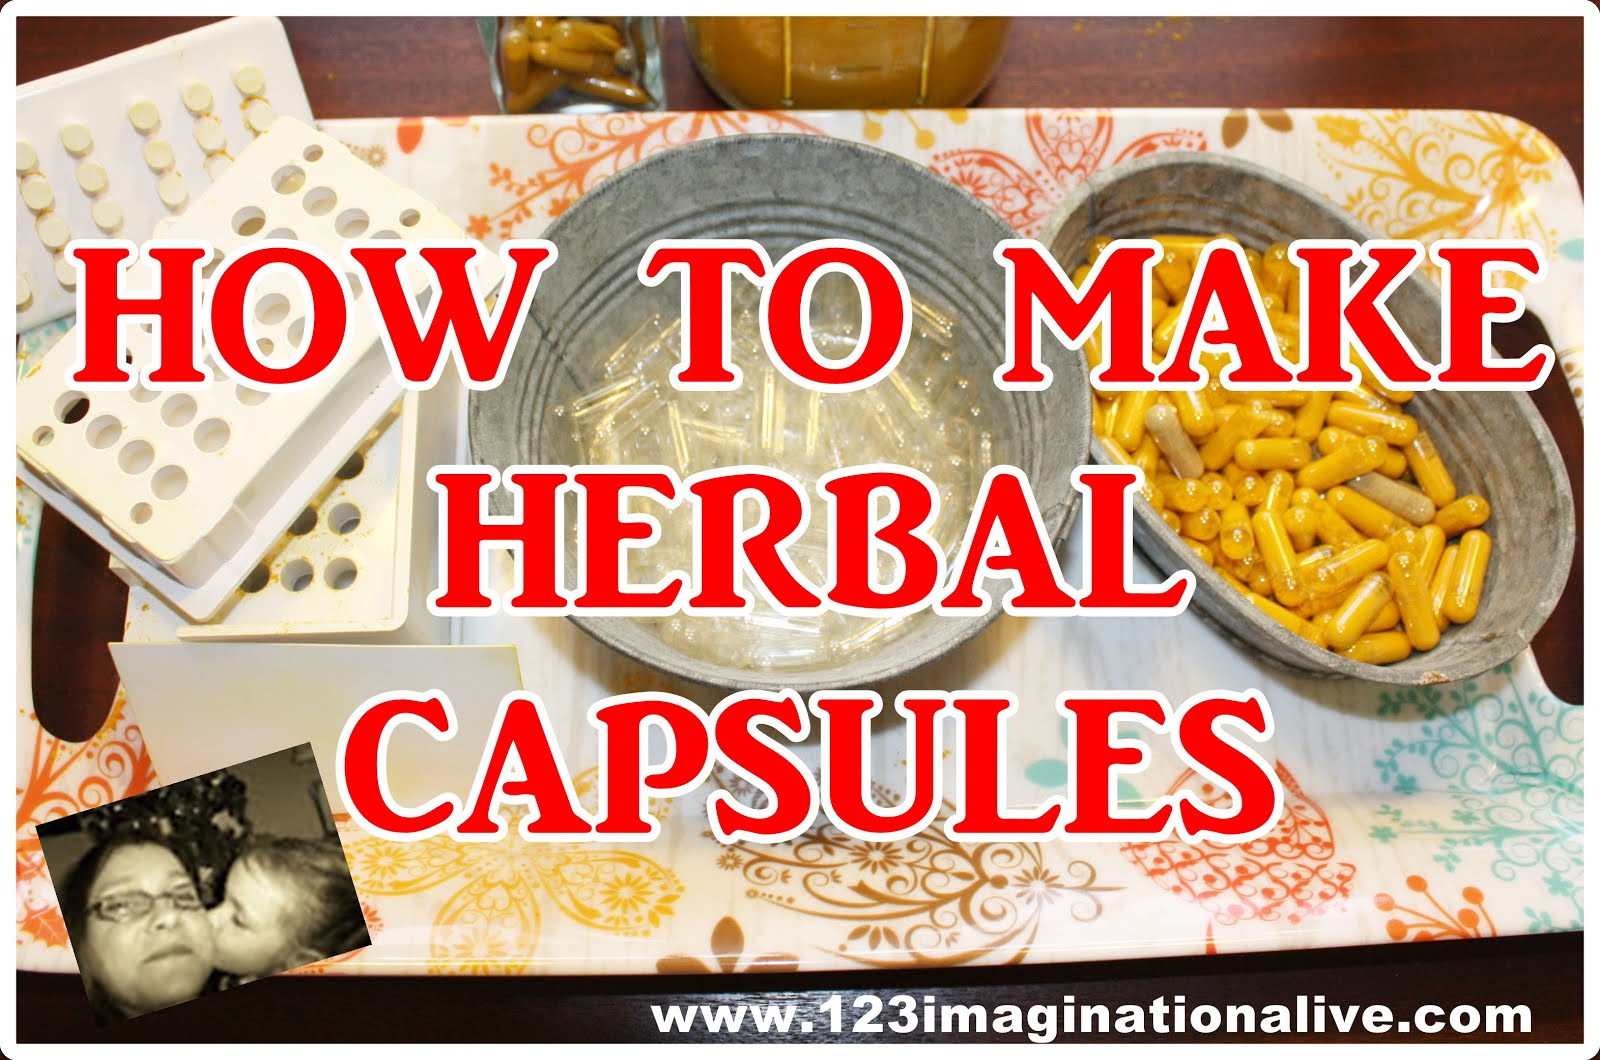 How To Make Herbal Capsules